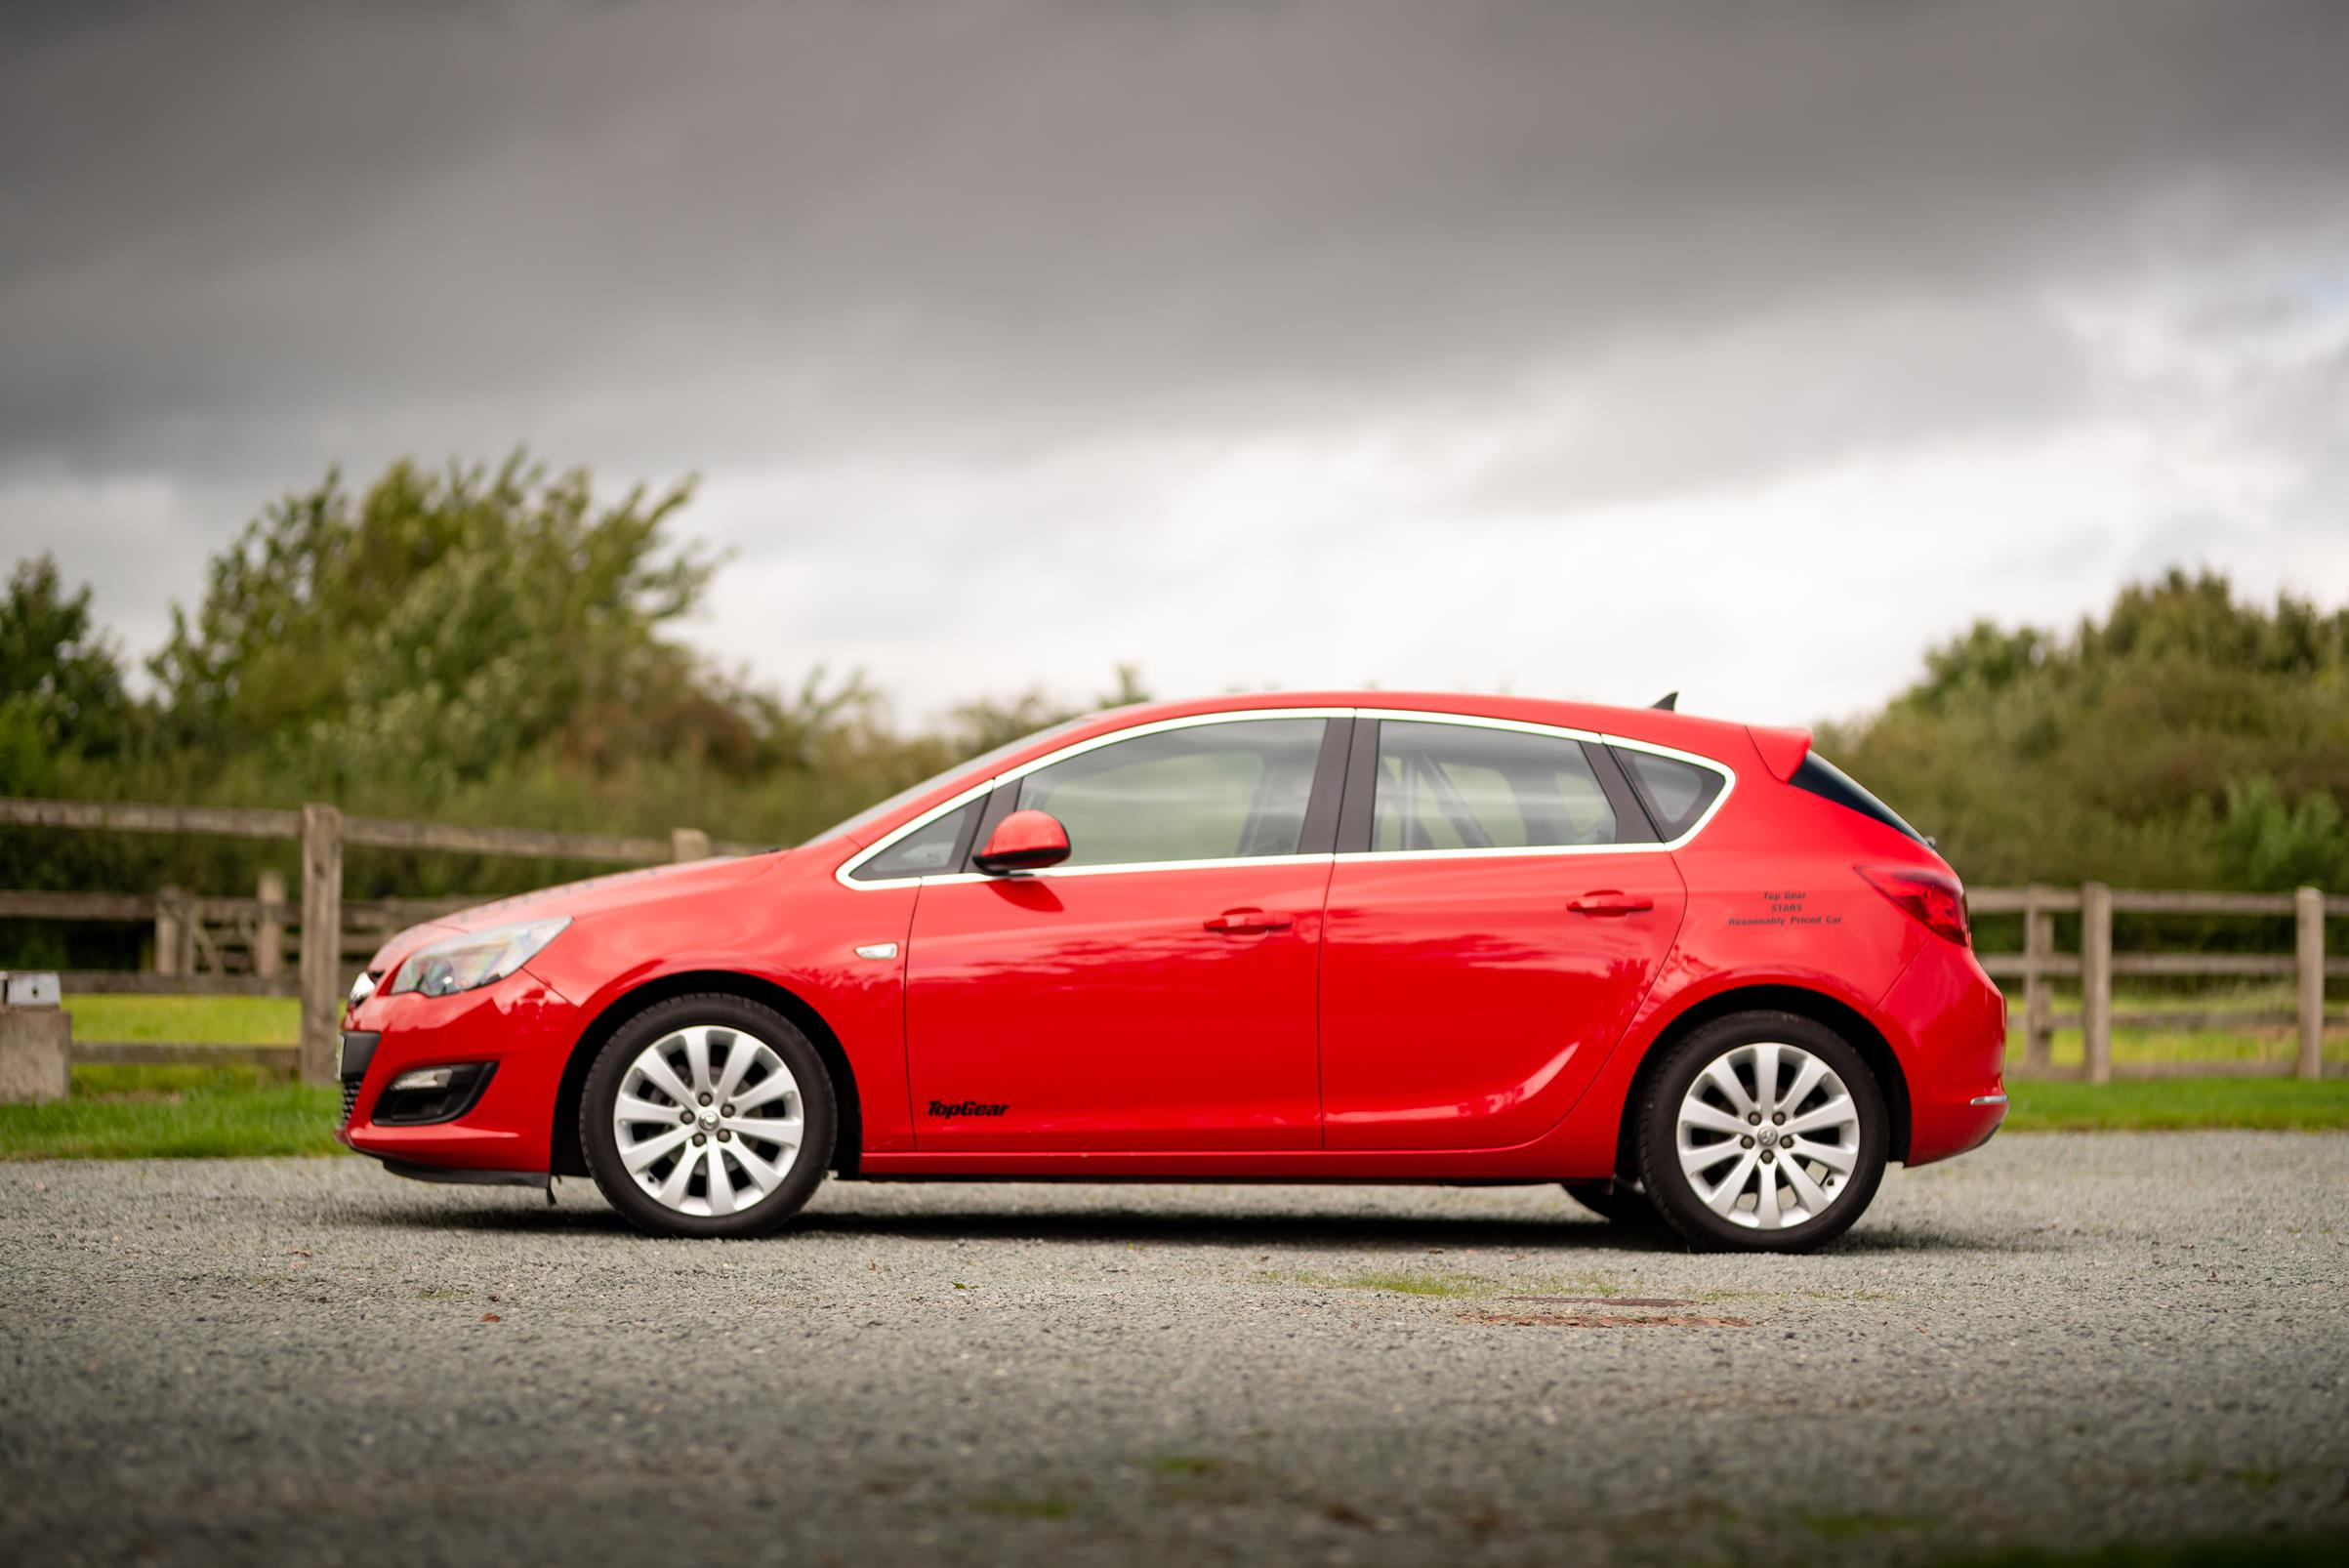 Vauxhall-Astra-Reasonably-Priced-Car-for-sale-2